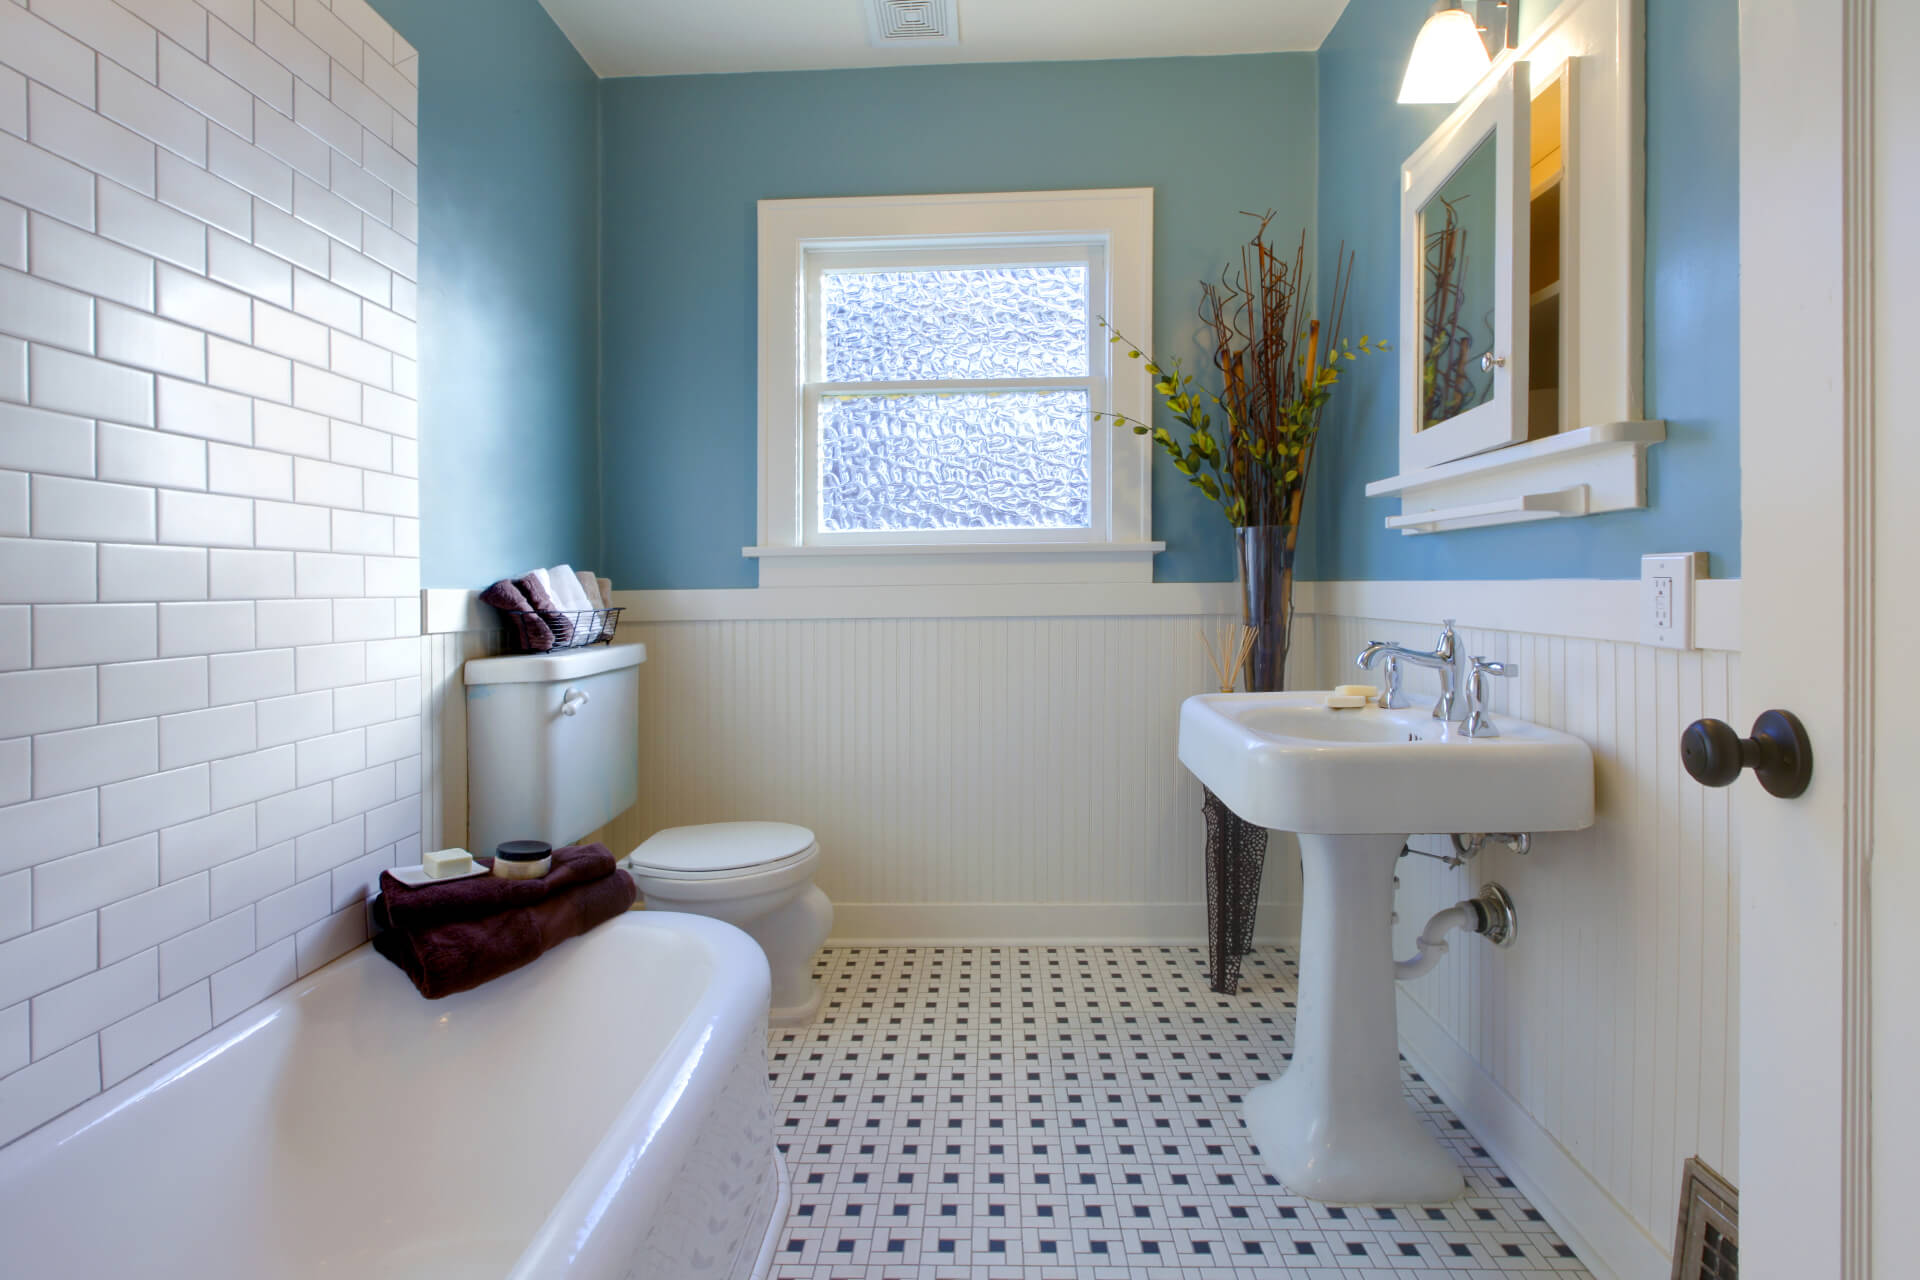 Olympia WA Painting Contractor Drywall Contractor - Bathroom remodel olympia wa